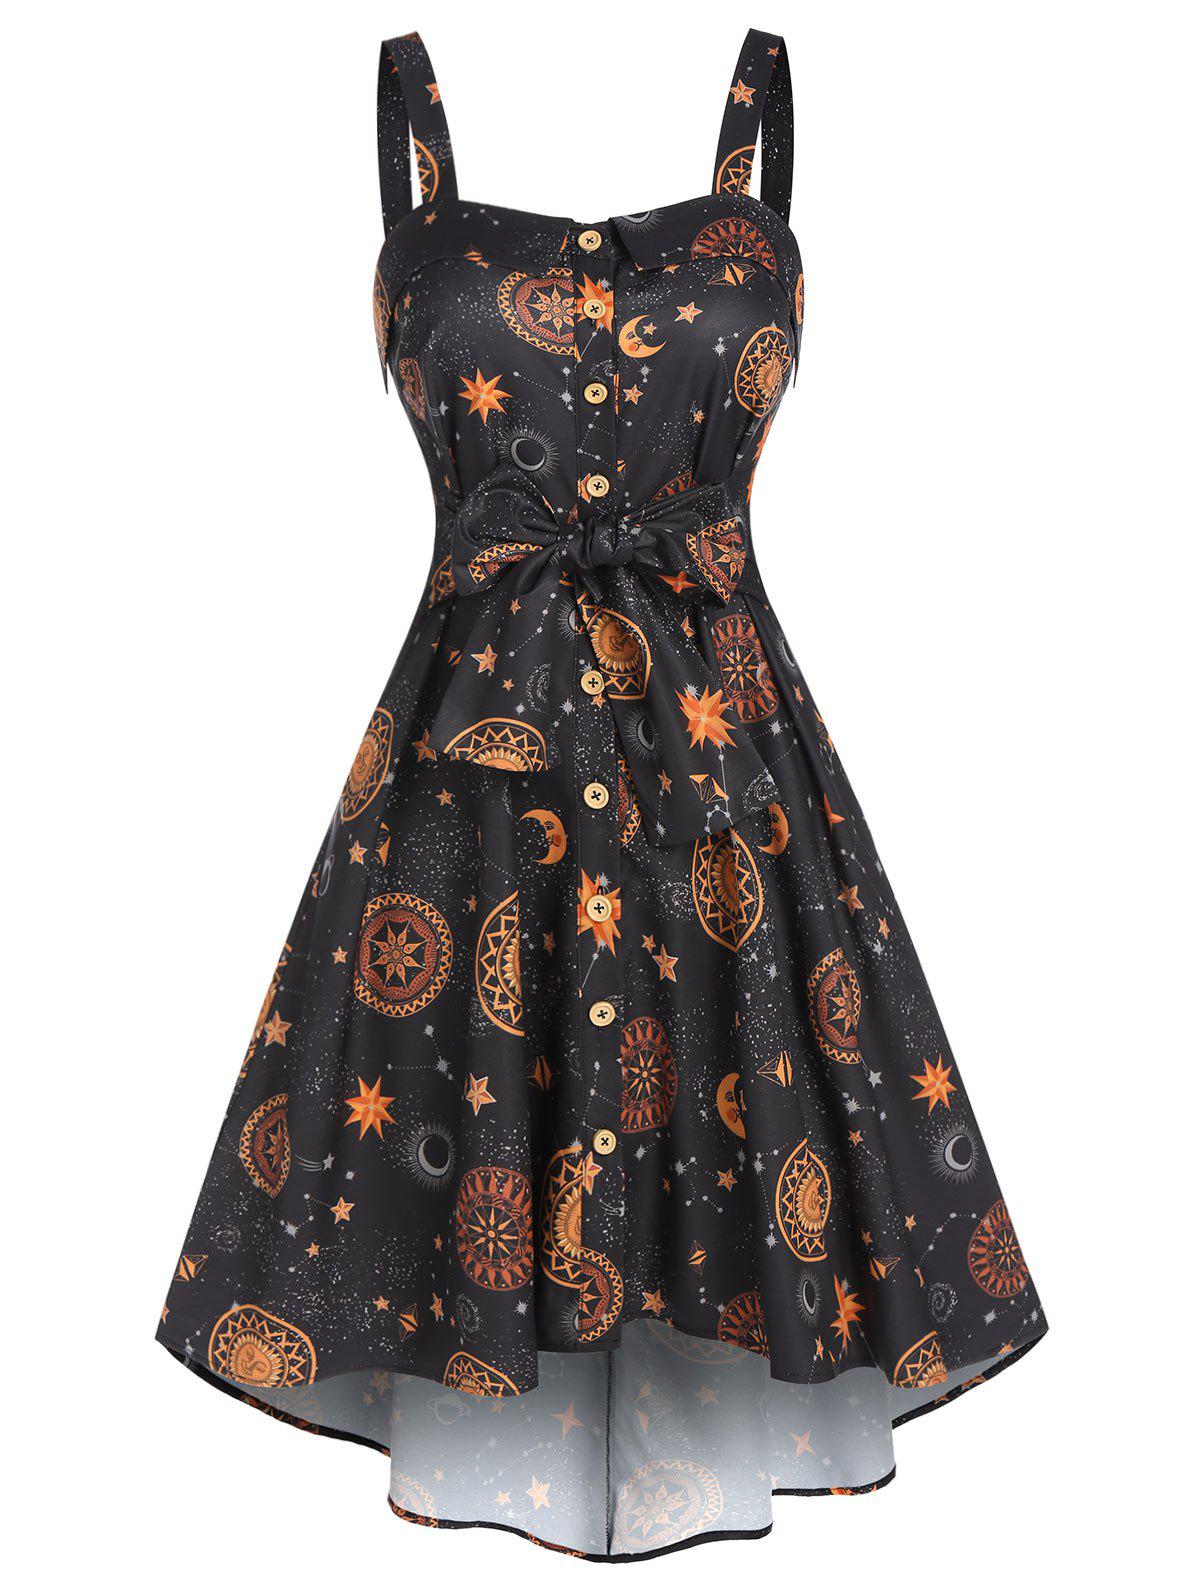 Sun Moon Star Print Pockets Cami High Low Dress - BLACK M